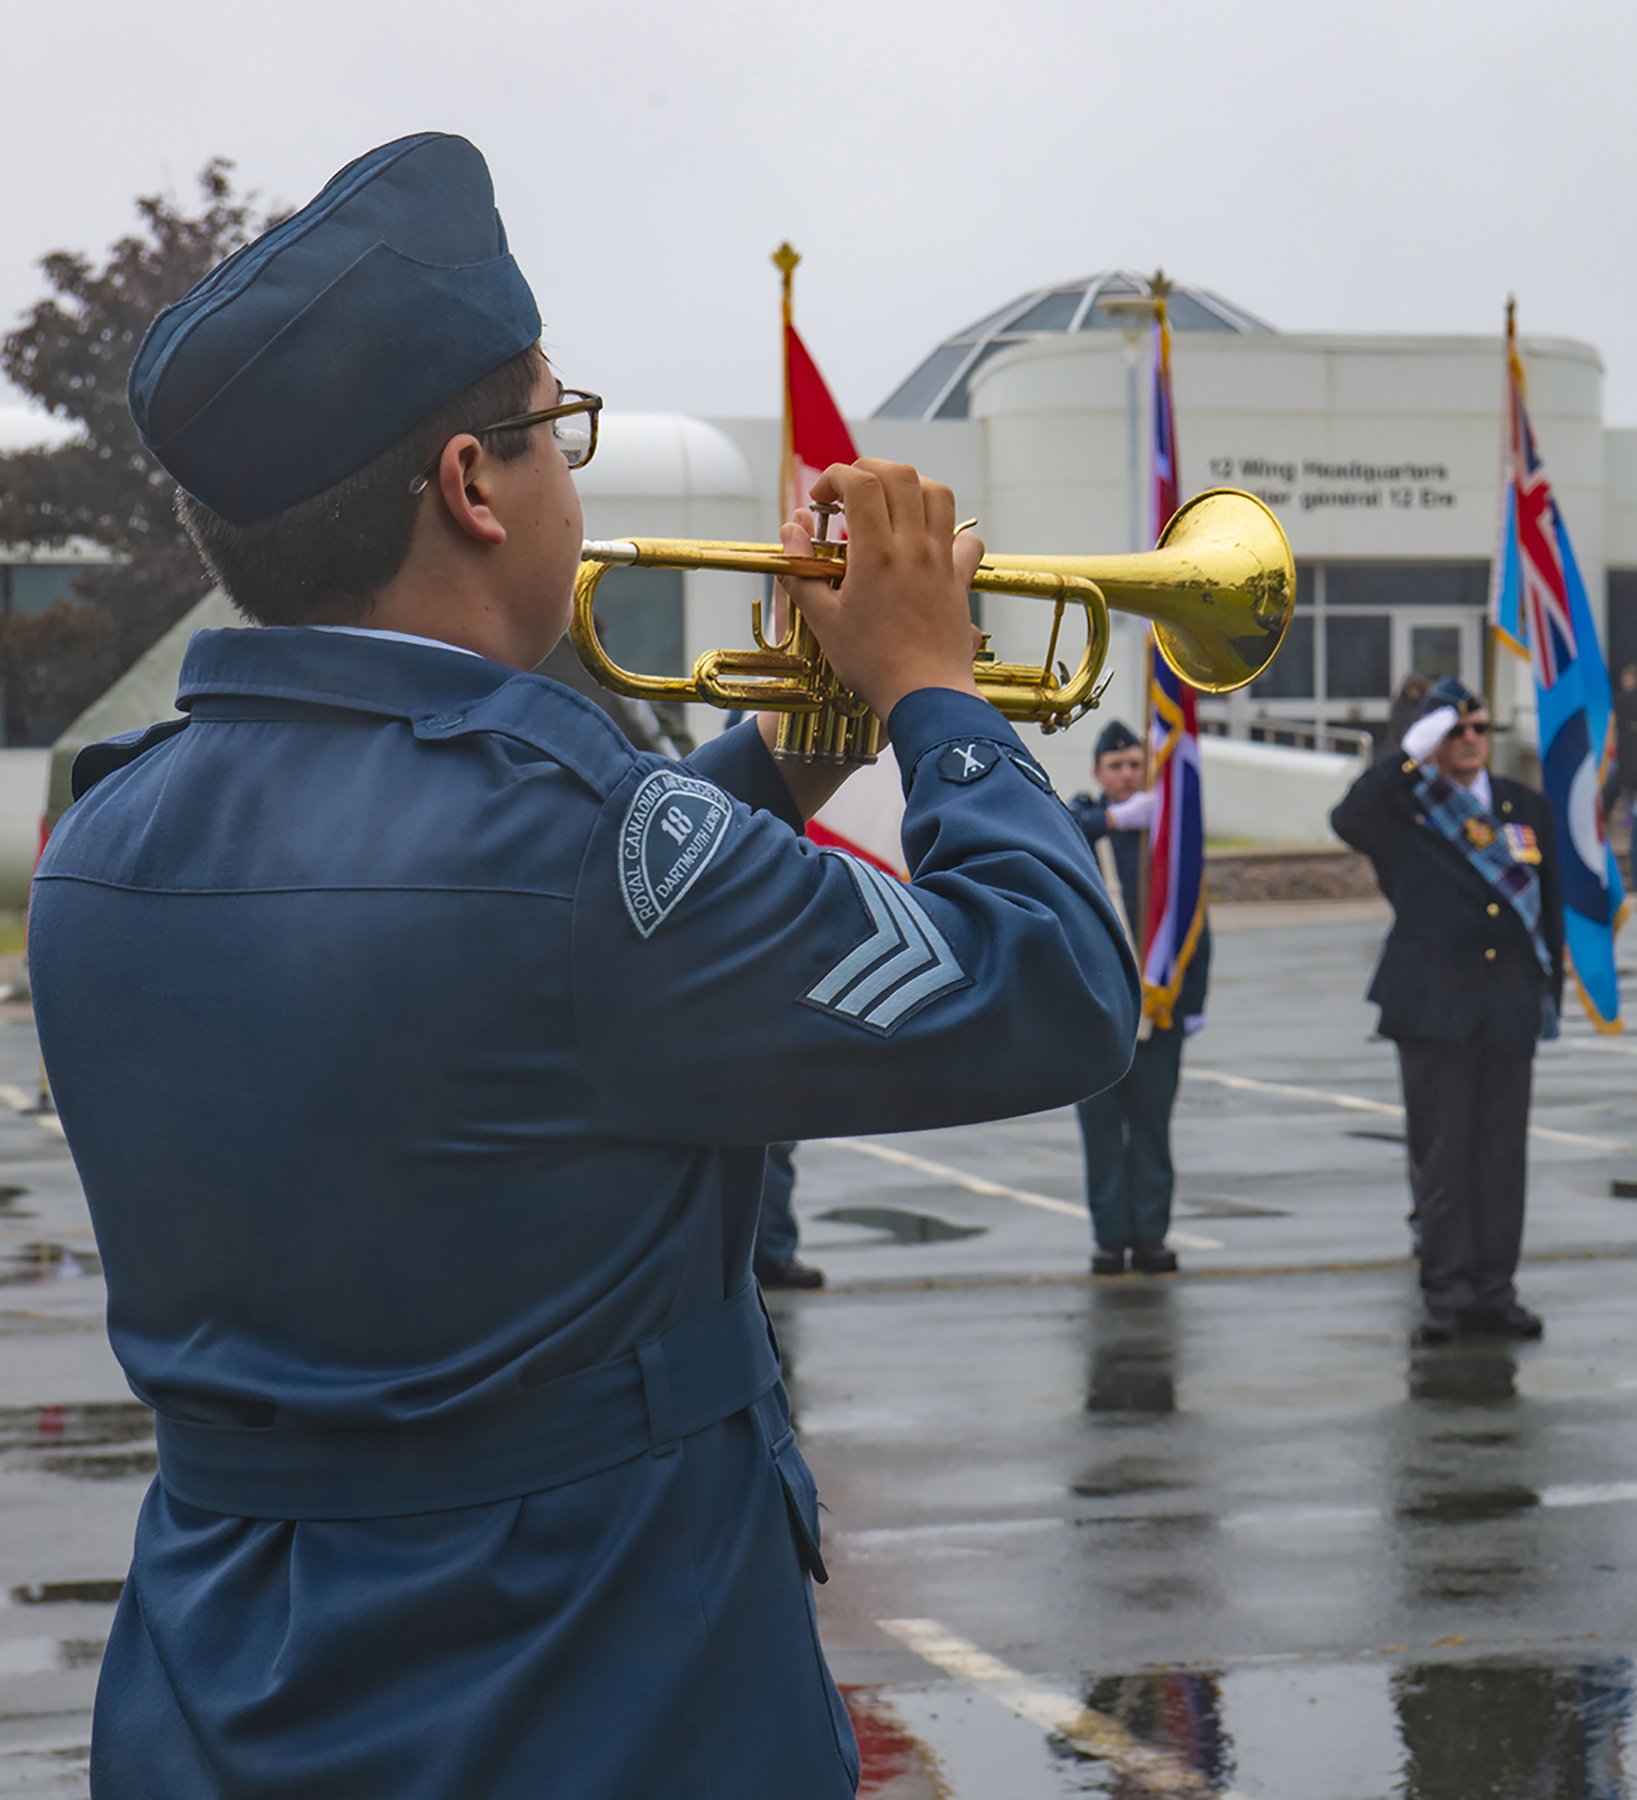 A Royal Canadian Air Cadet plays the bugle during the Battle of Britain Ceremony at 12 Wing Shearwater, Nova Scotia, on September 15, 2019. PHOTO: Aviator Olivia Mainville, SW14-2019-0403-003